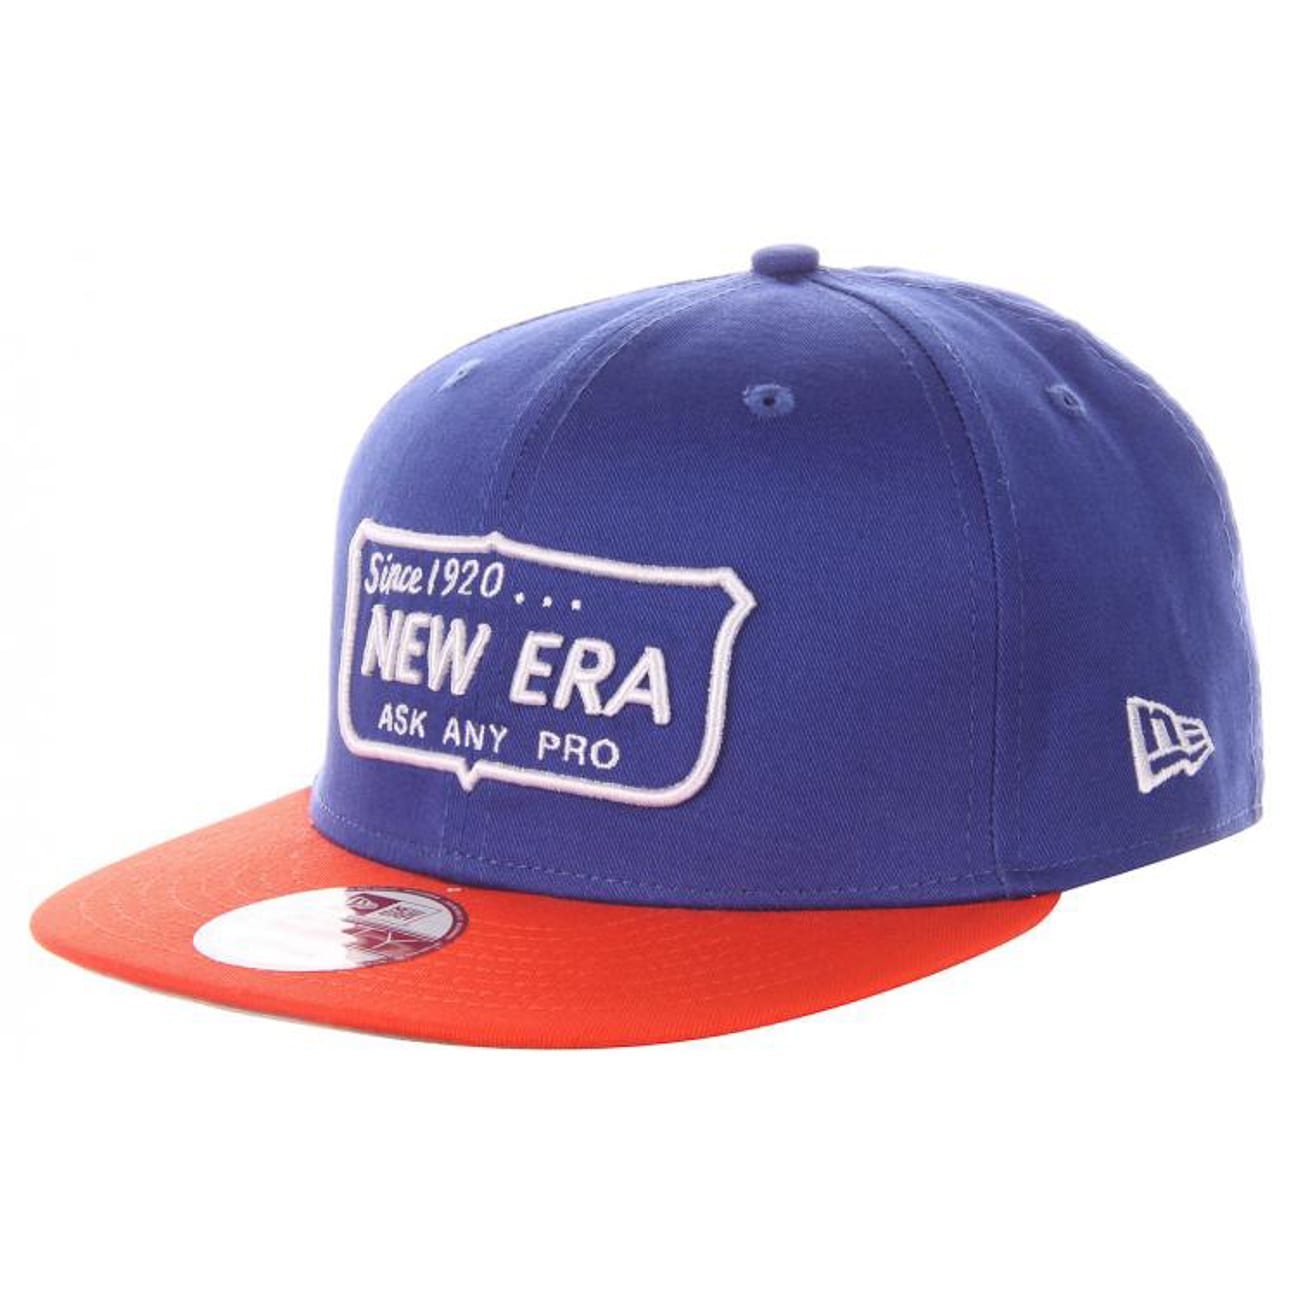 9Fifty Ask any Pro Cap by New Era - blue 1 ... 25d12cd5720